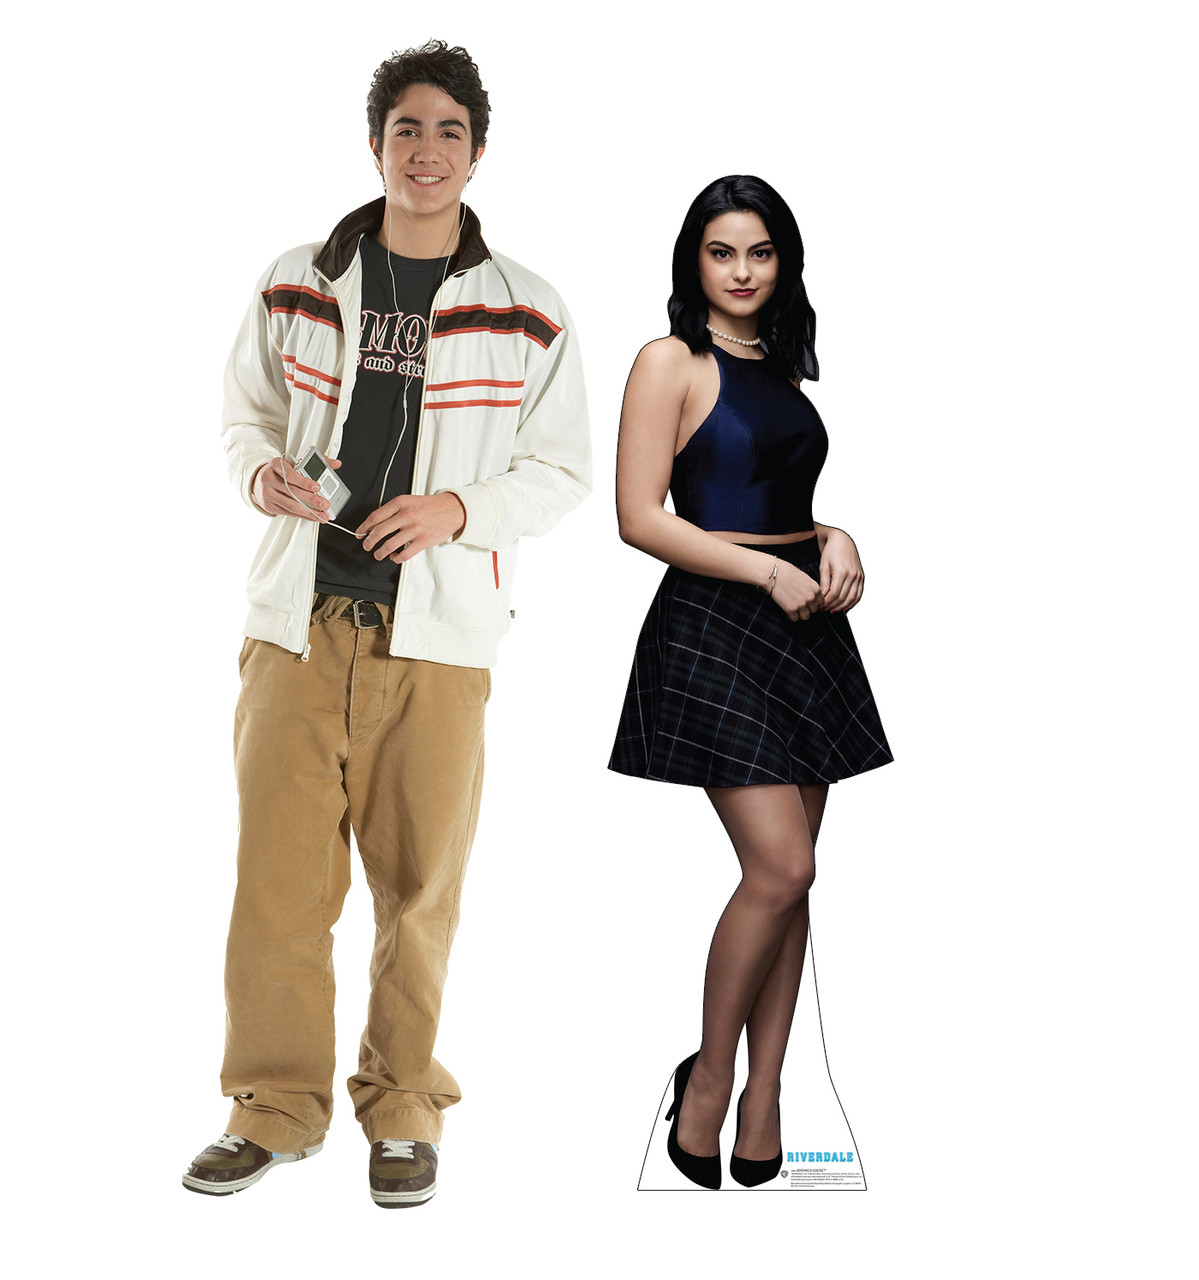 Life-size cardboard standee of Veronica Lodge from the TV Series Riverdale with model.